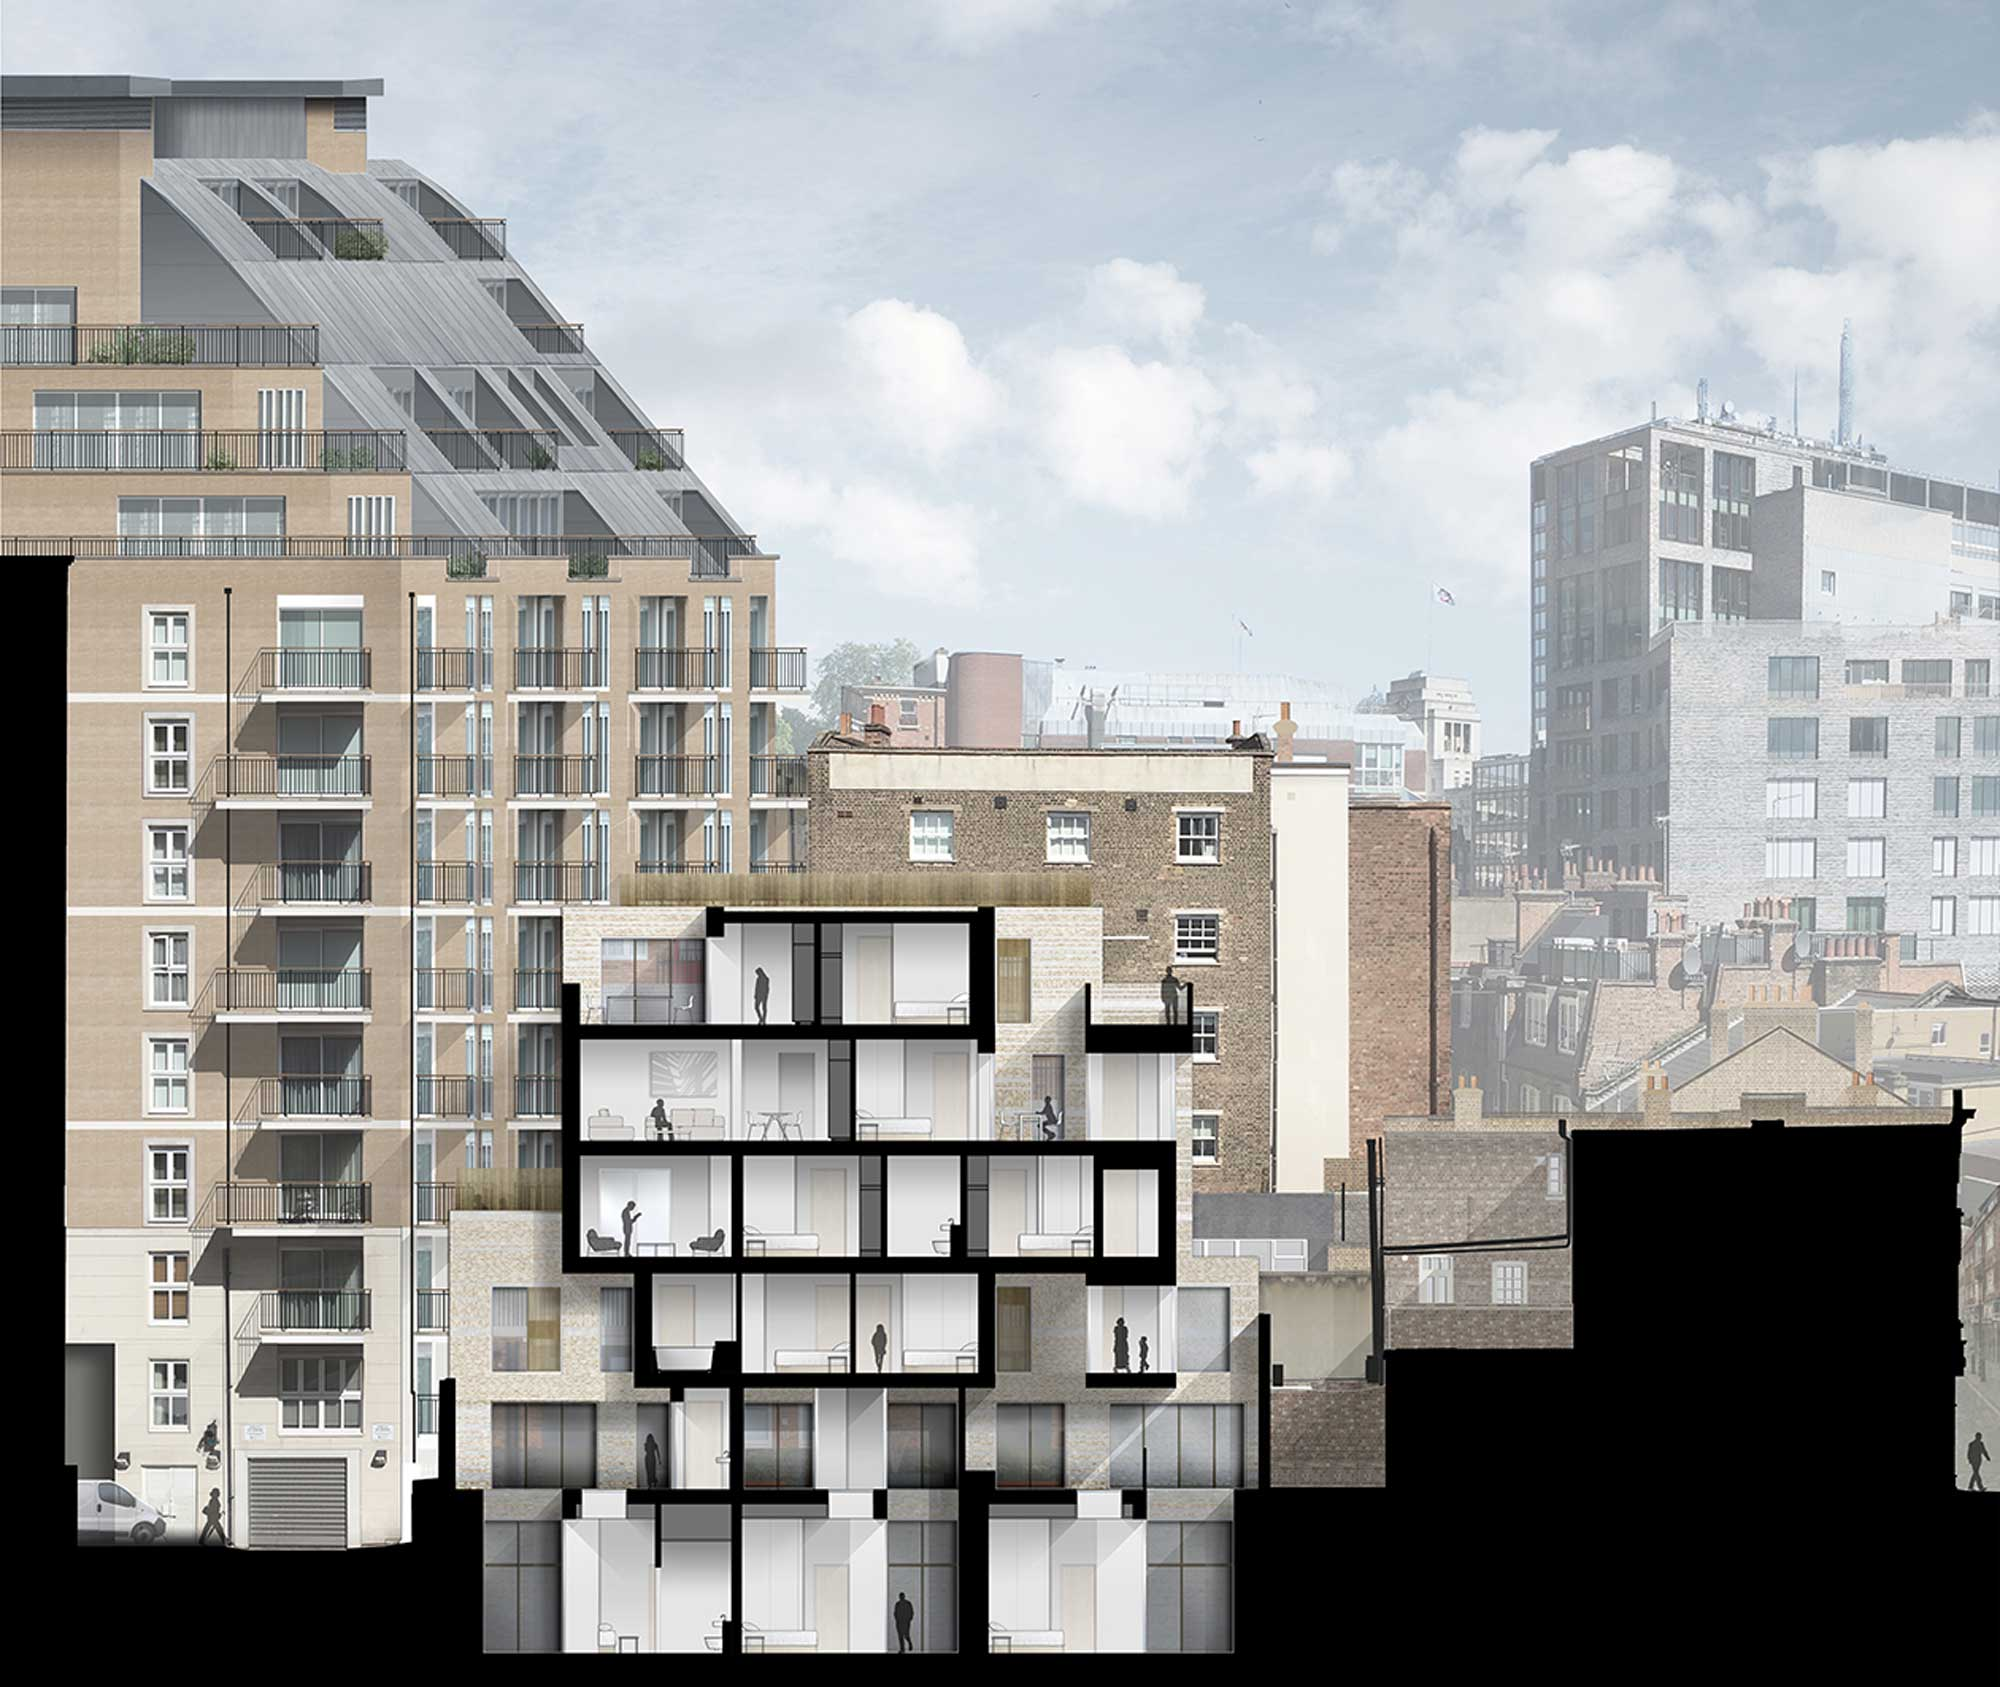 westminster-fire-station-openstudio-architects-section